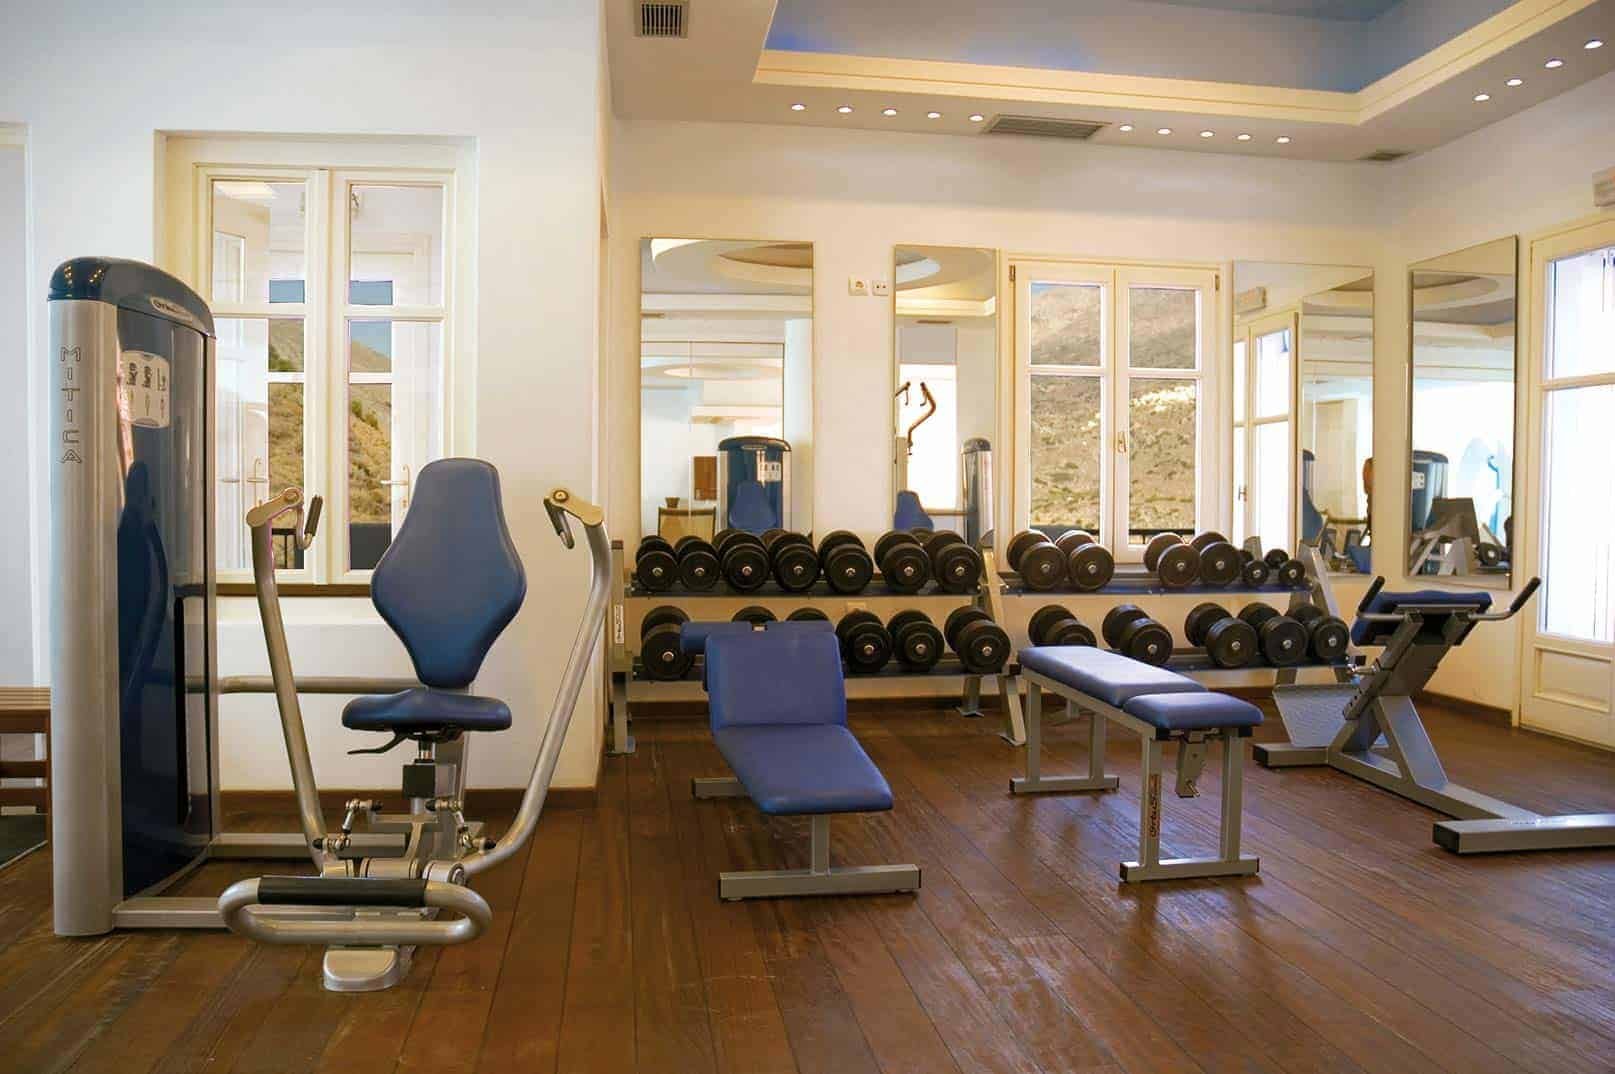 Fitness Center Room1